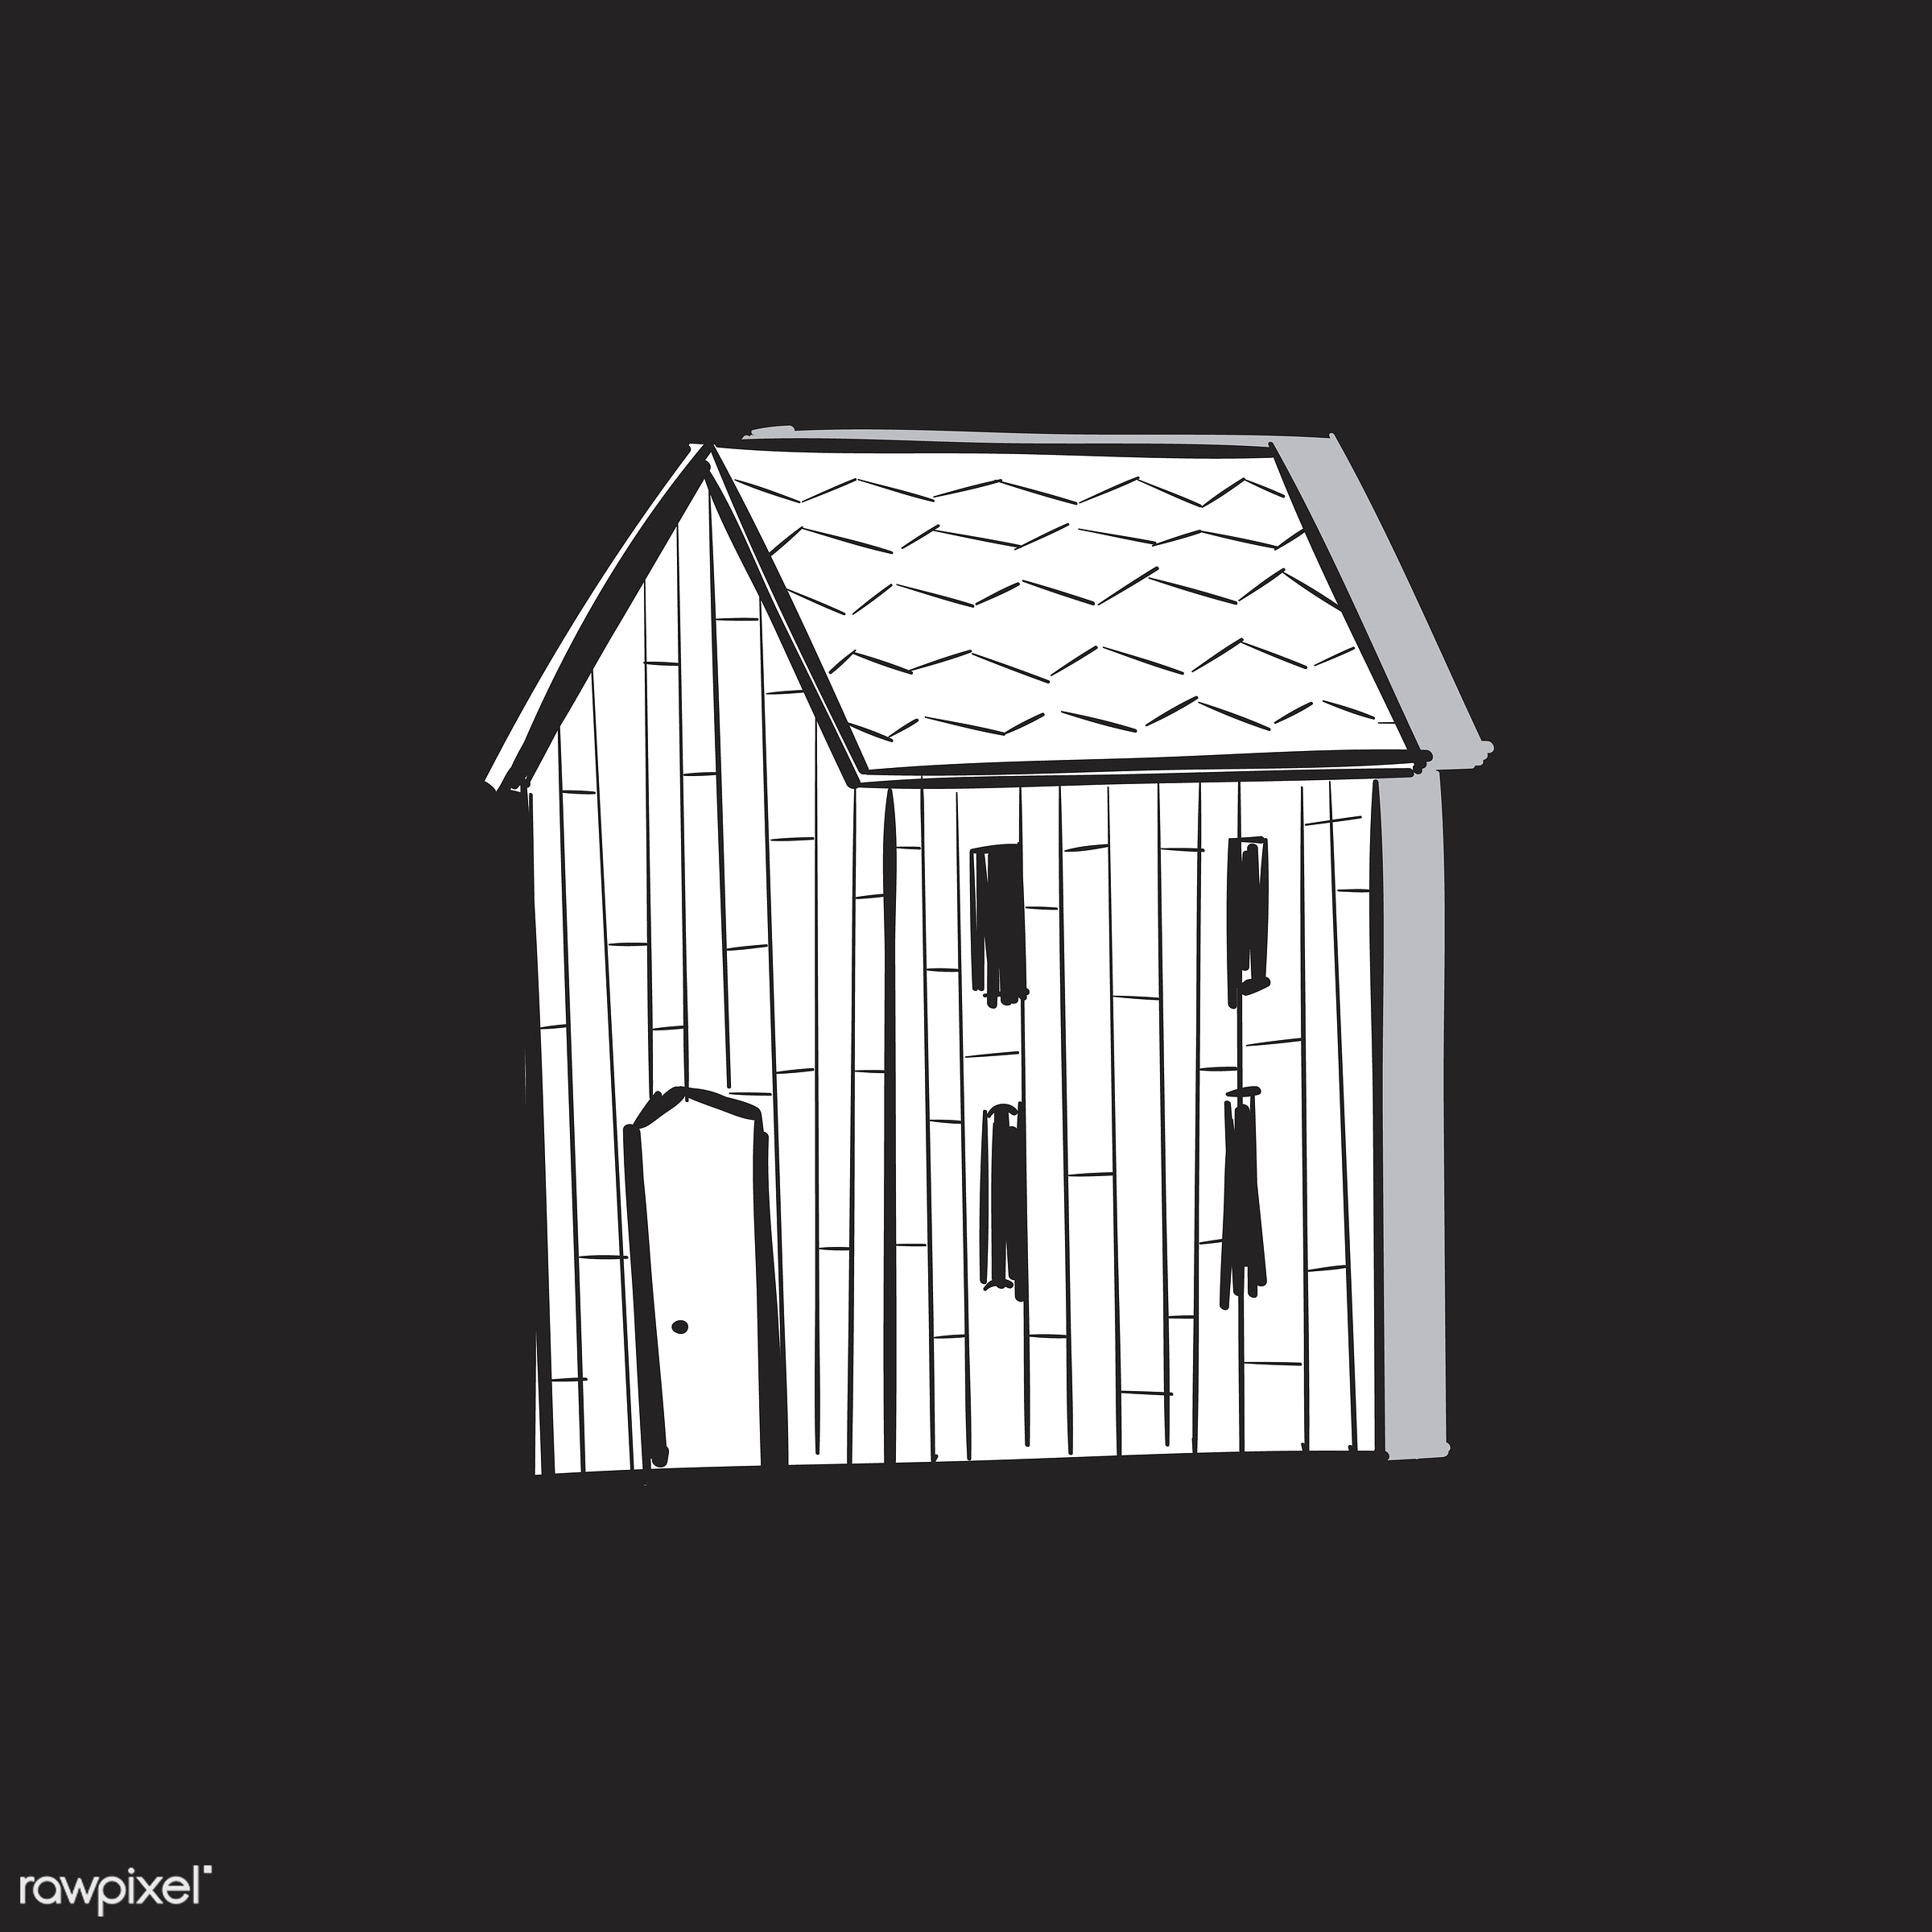 Hand drawing illustration of lifestyle concept - house, artwork, barn, creativity, design, draw, drawing, drawn, freedom,...